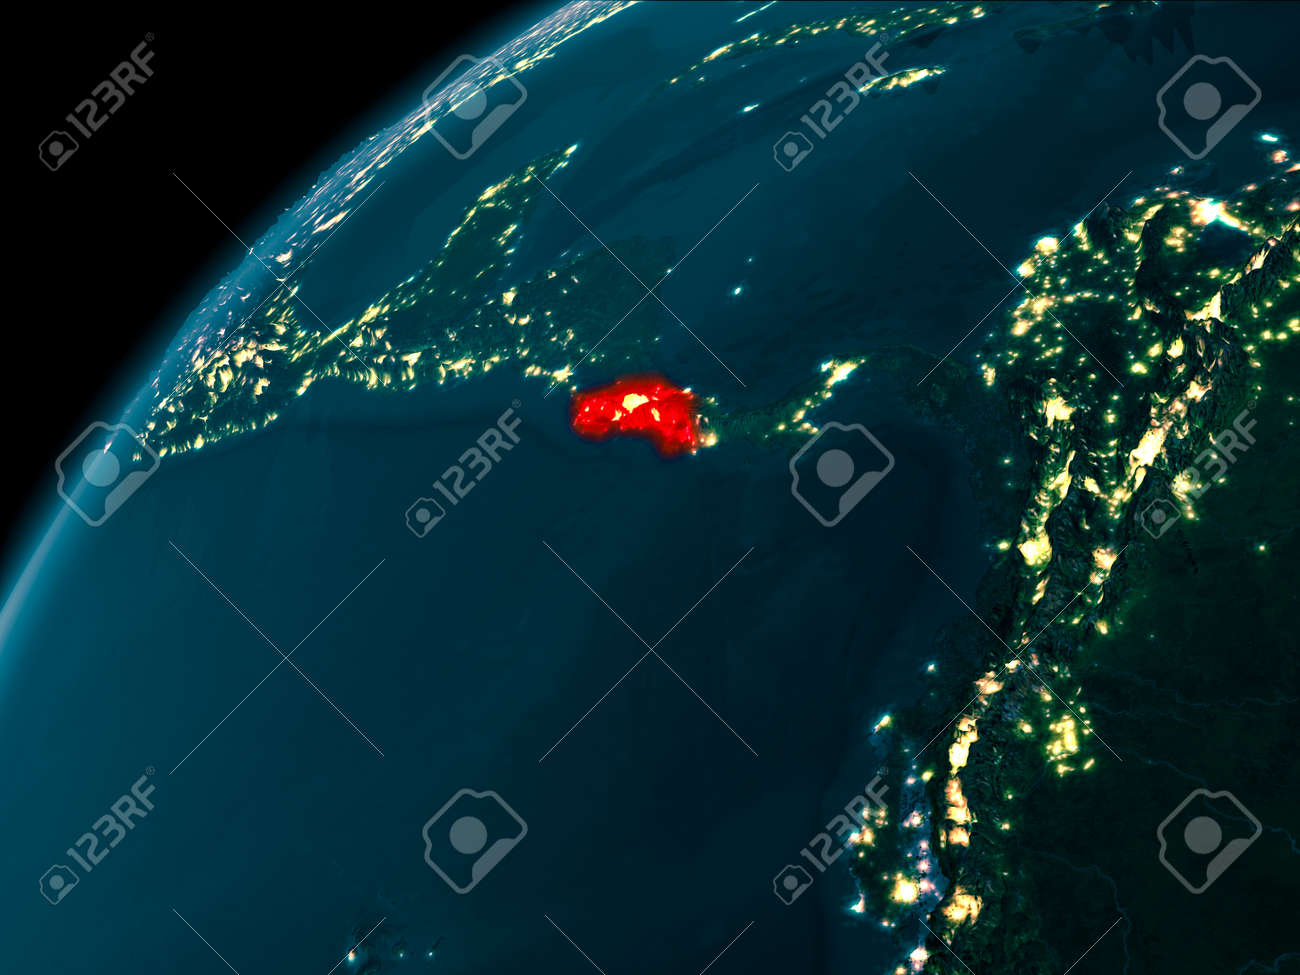 Night map of costa rica as seen from space on planet earth 3d illustration night map of costa rica as seen from space on planet earth 3d illustration gumiabroncs Image collections